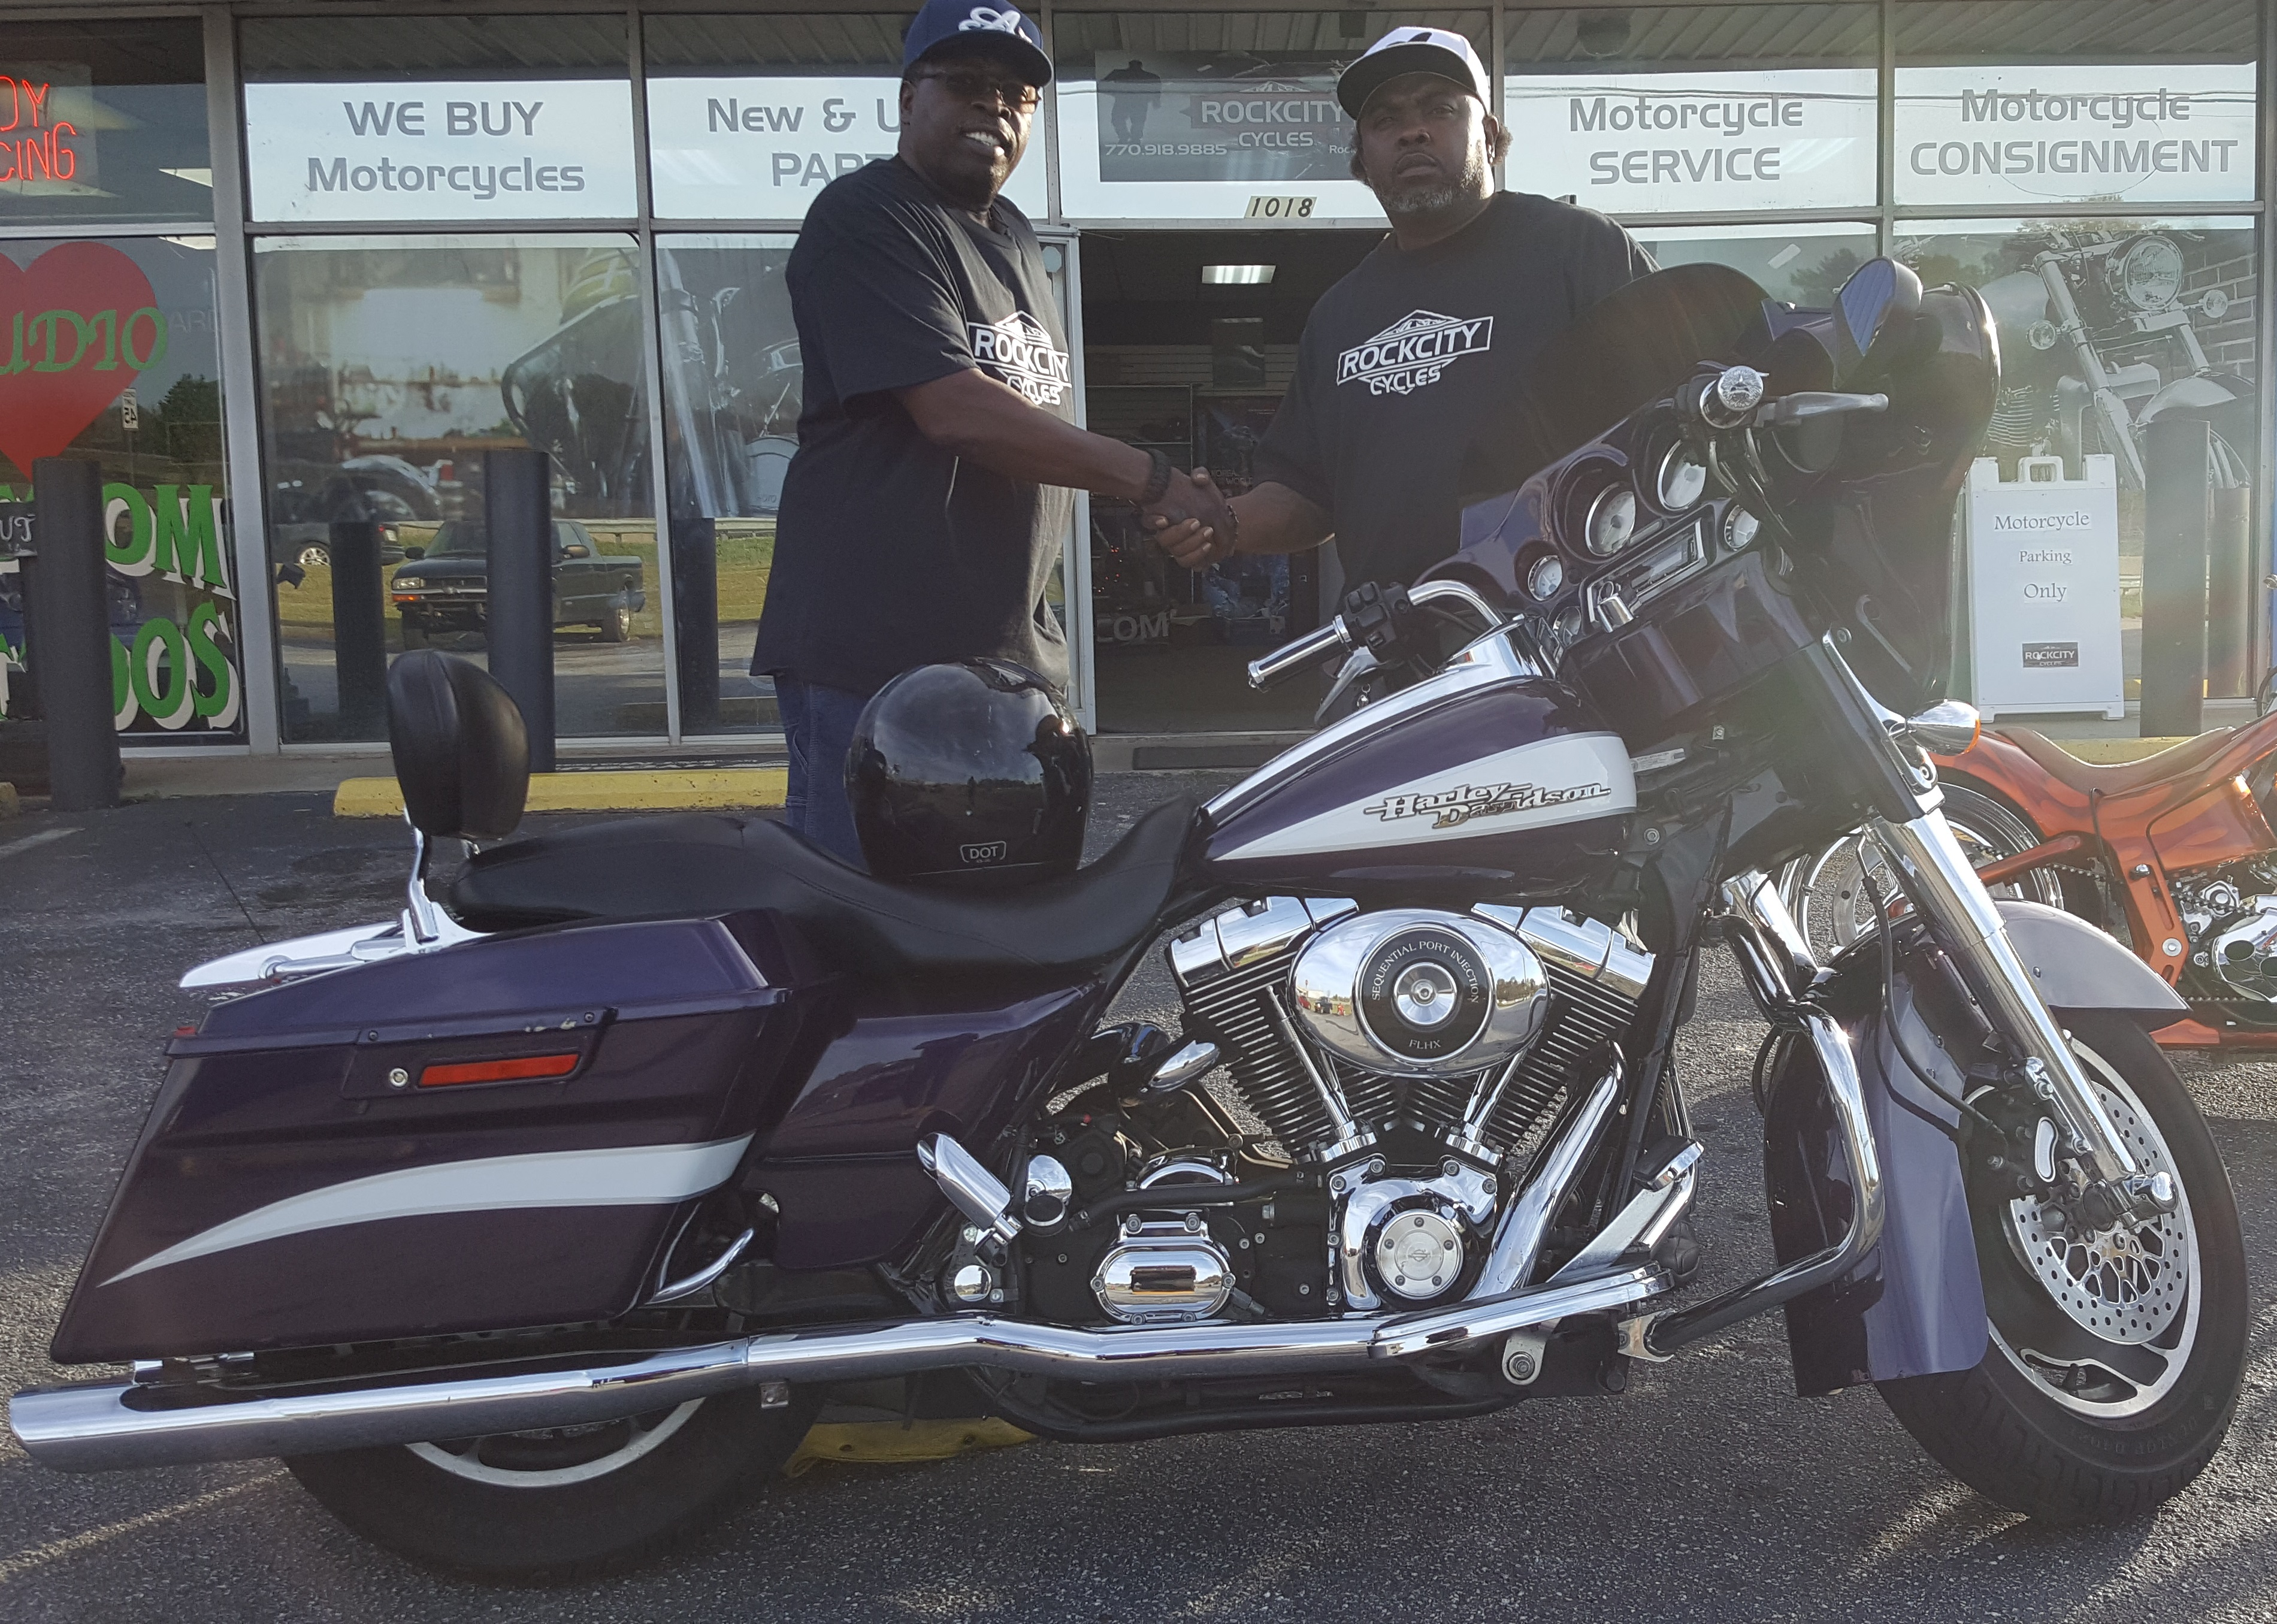 Eric E. with his 2006 Harley-Davidson FLHXI Street Glide